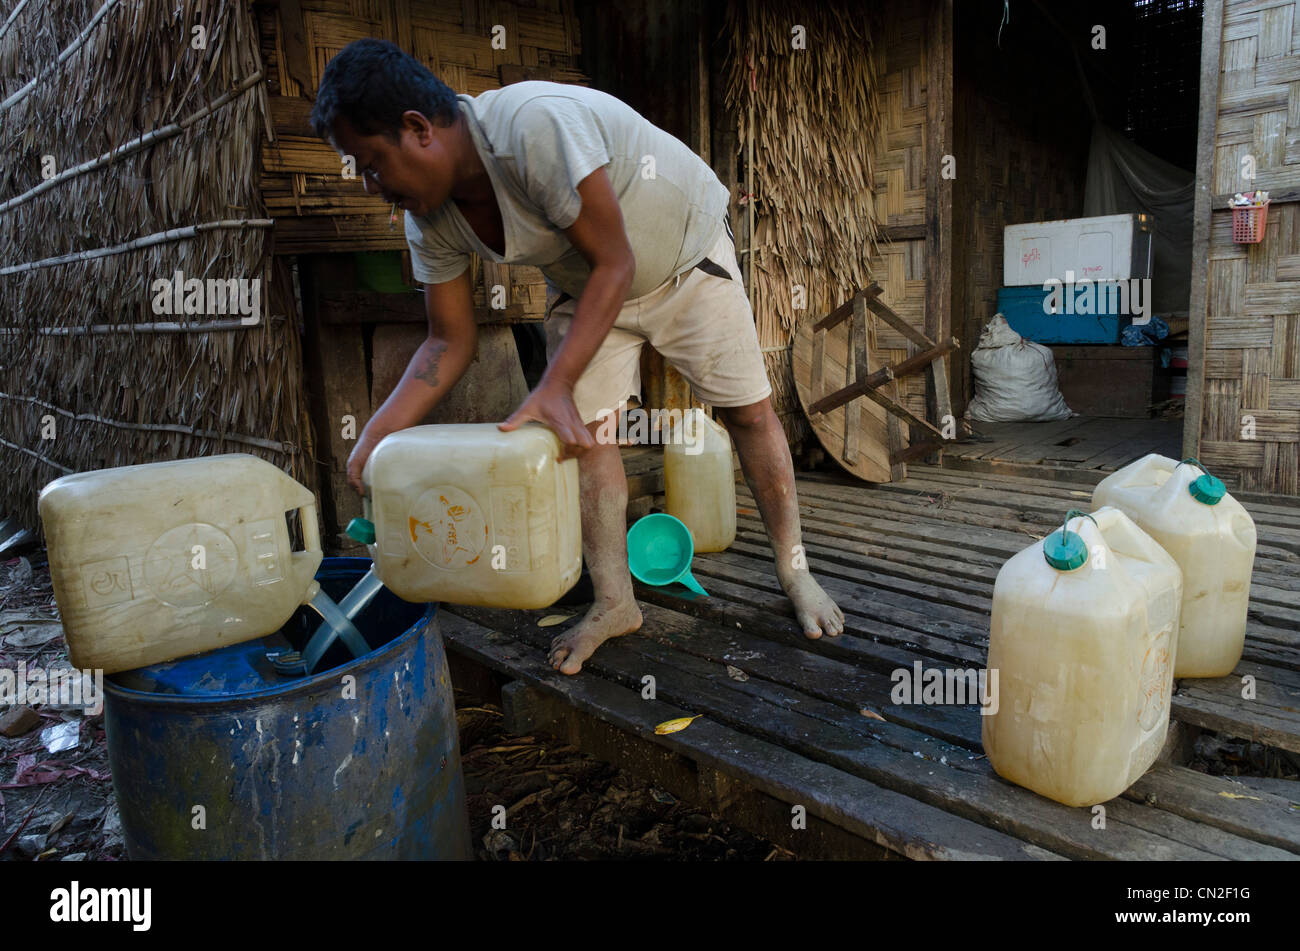 Drinking water supply from a rain pond. Yae Twin Saik village. Irrawaddy delta. Myanmar. - Stock Image